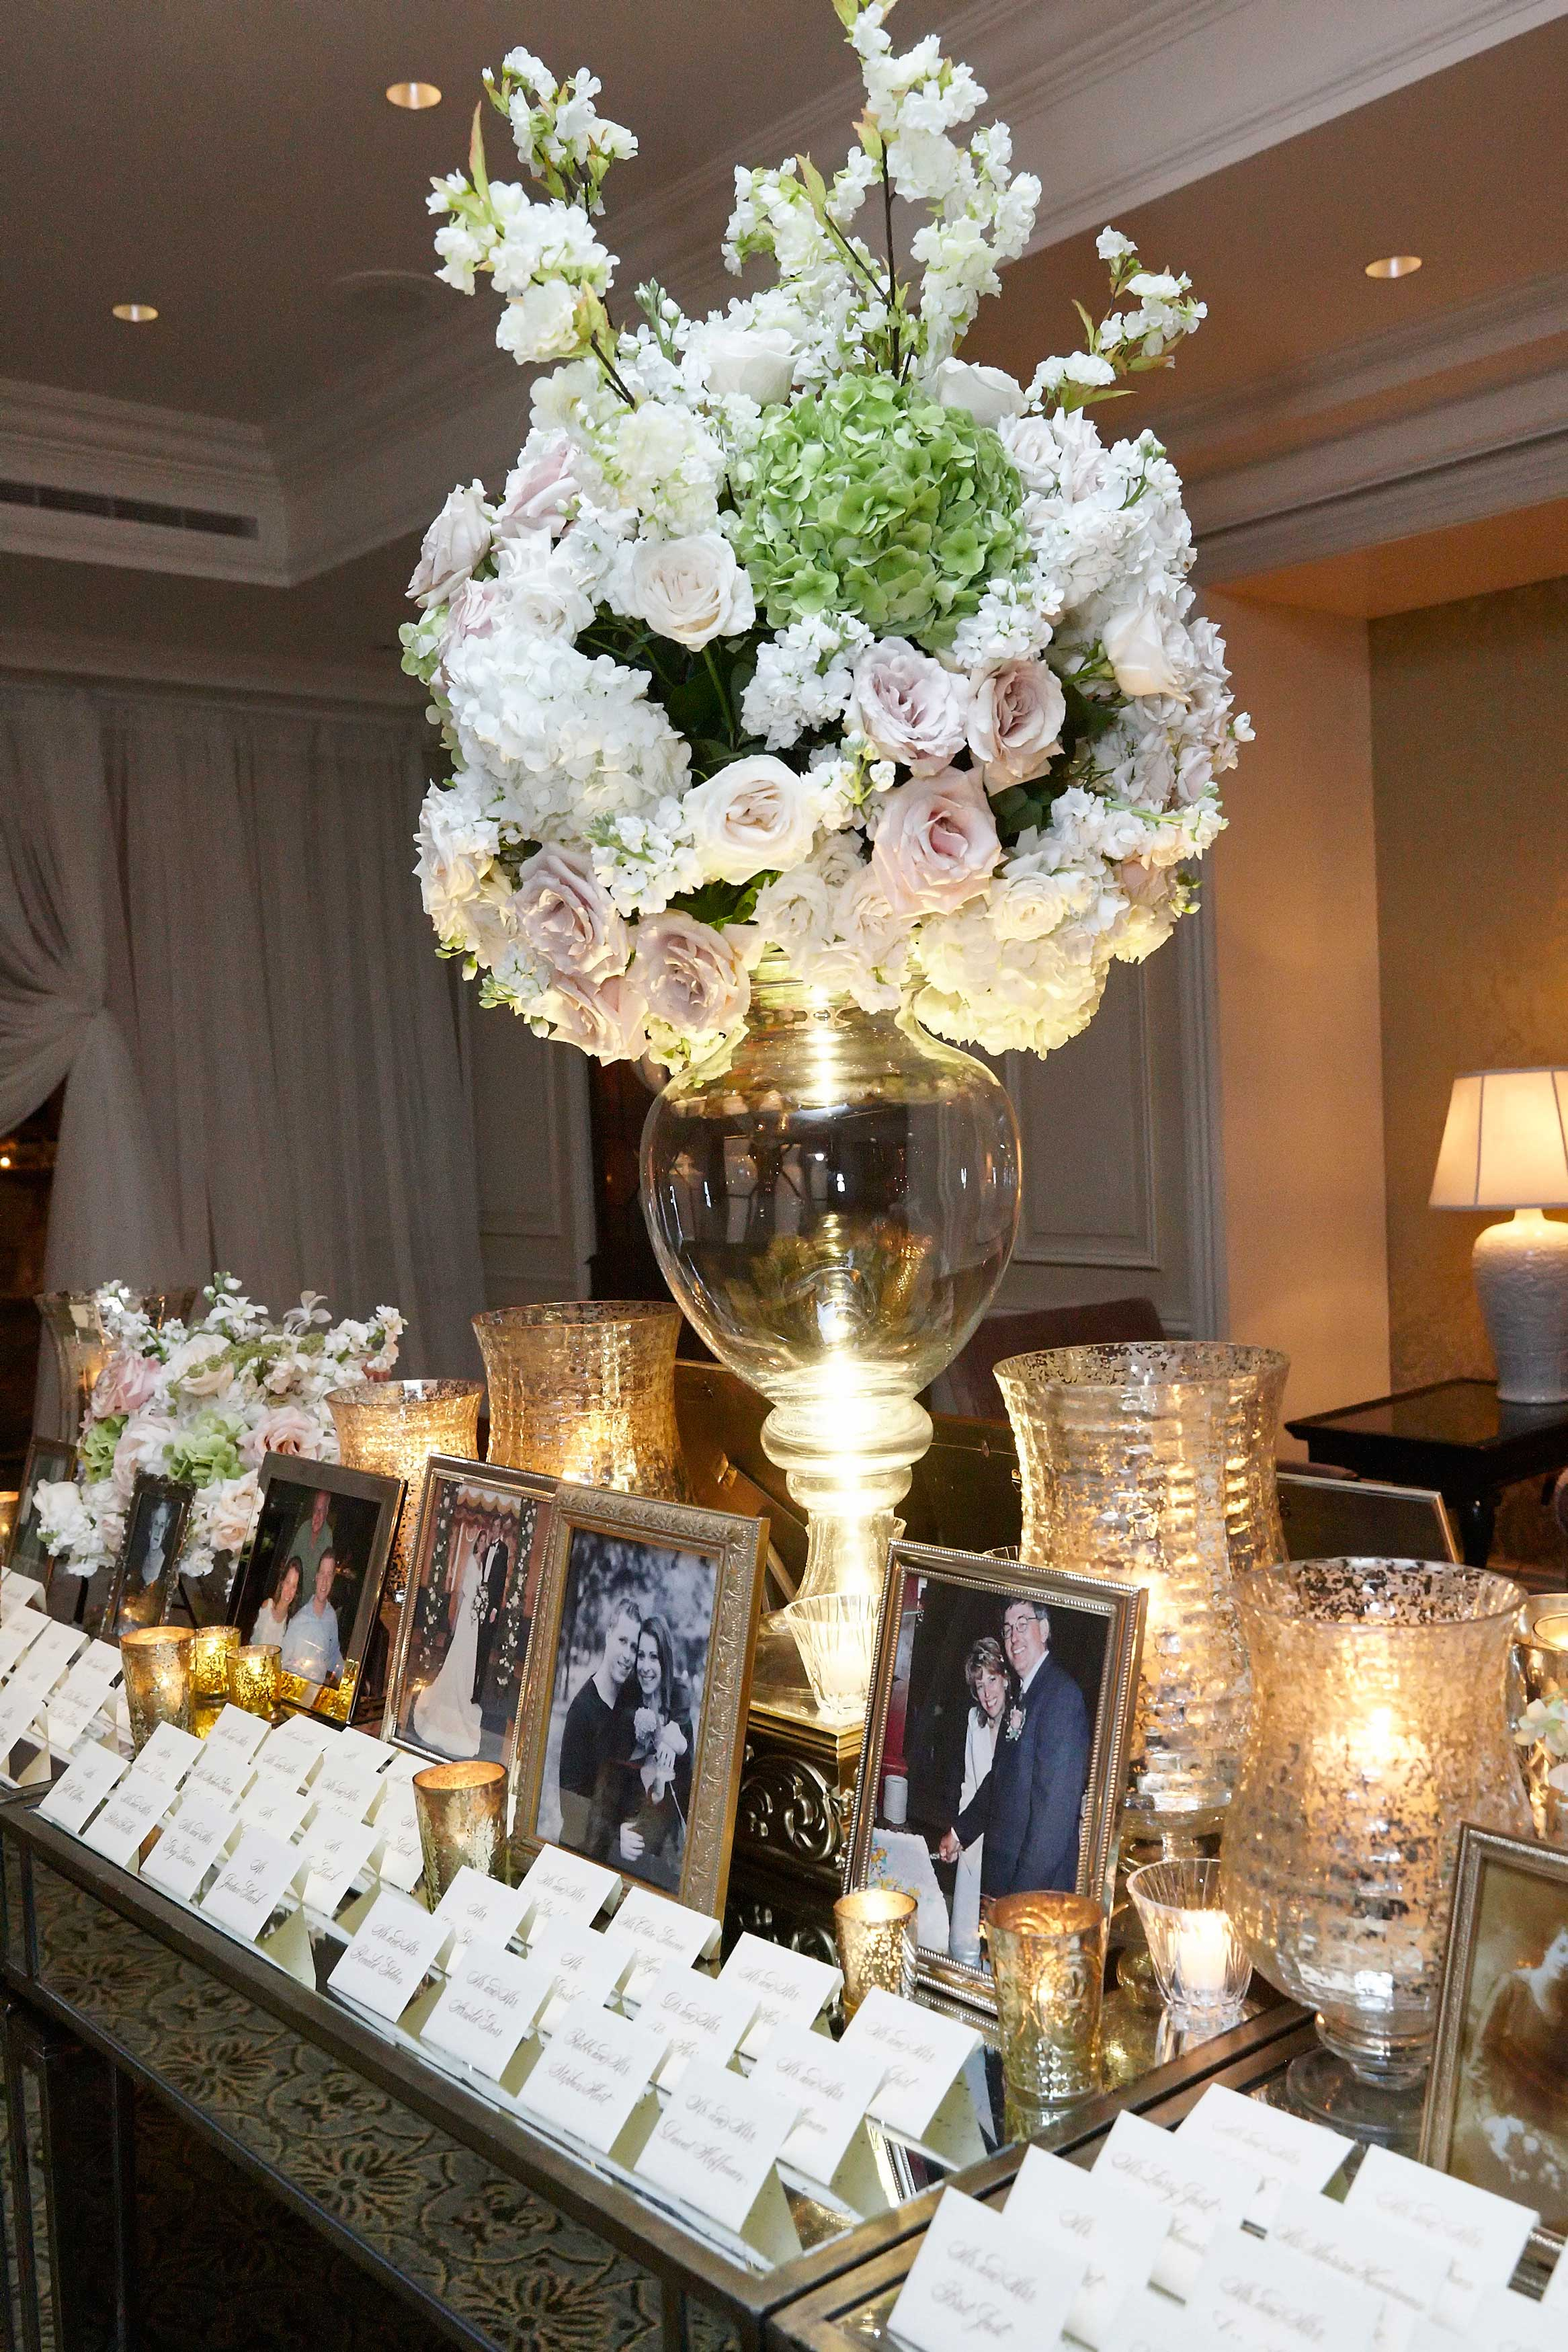 Mirror escort card table with place cards and photos of family members in frames